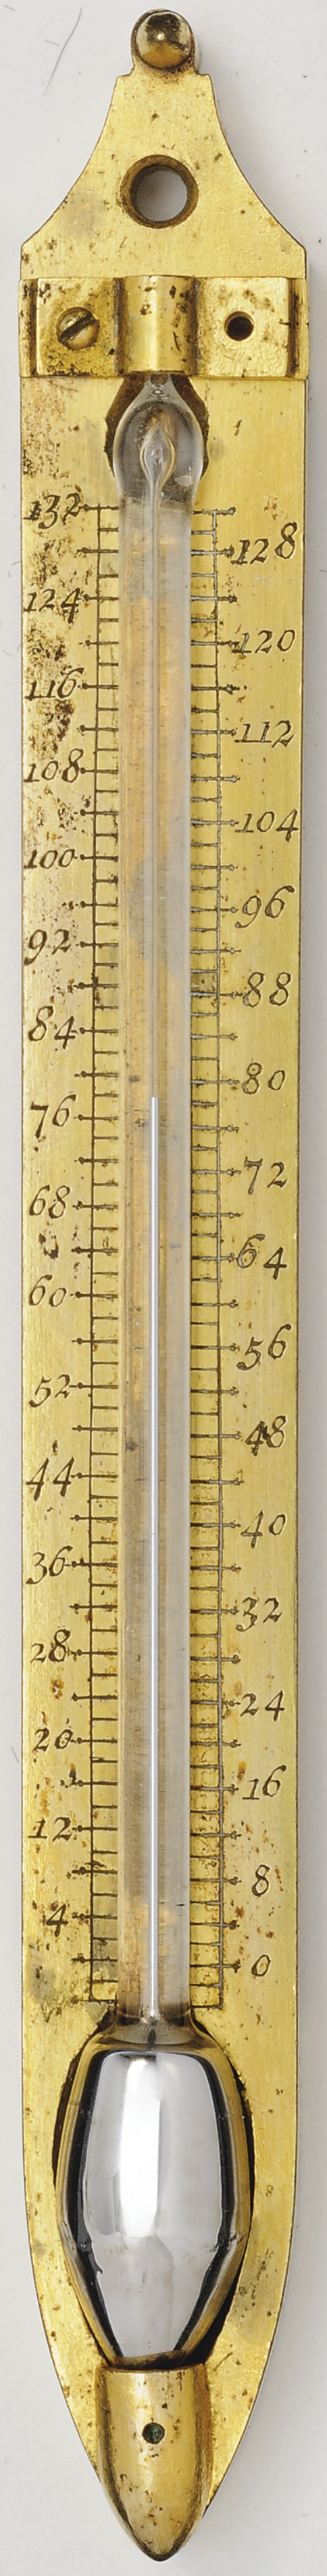 First Mercury Thermometer Invented The history blog » blog archive ...